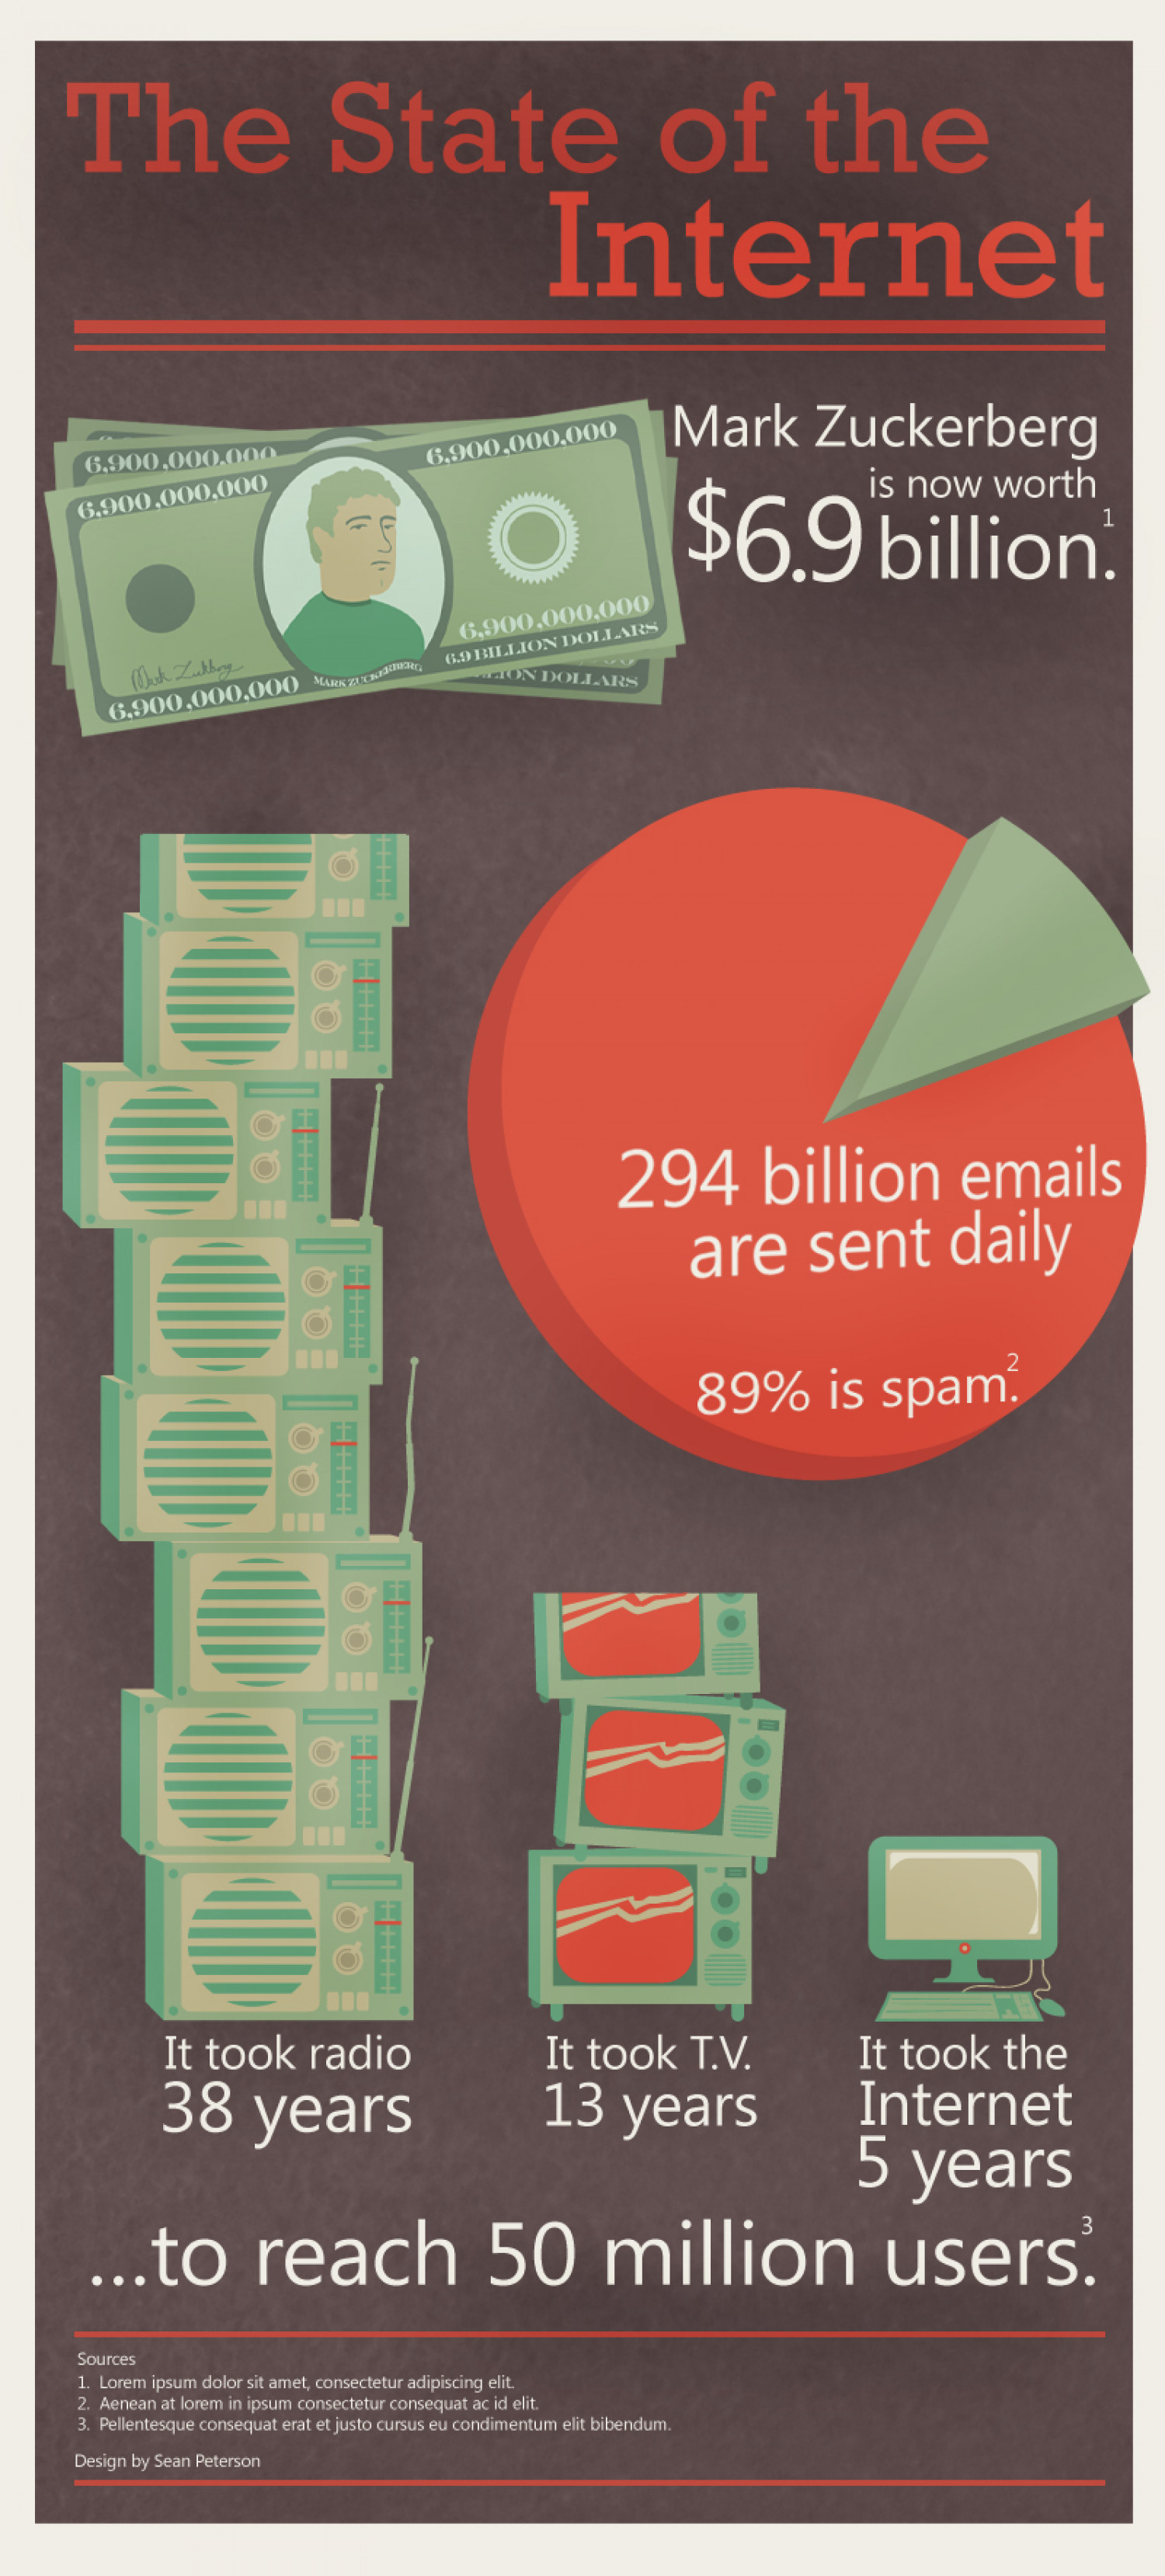 The State of the Internet Infographic